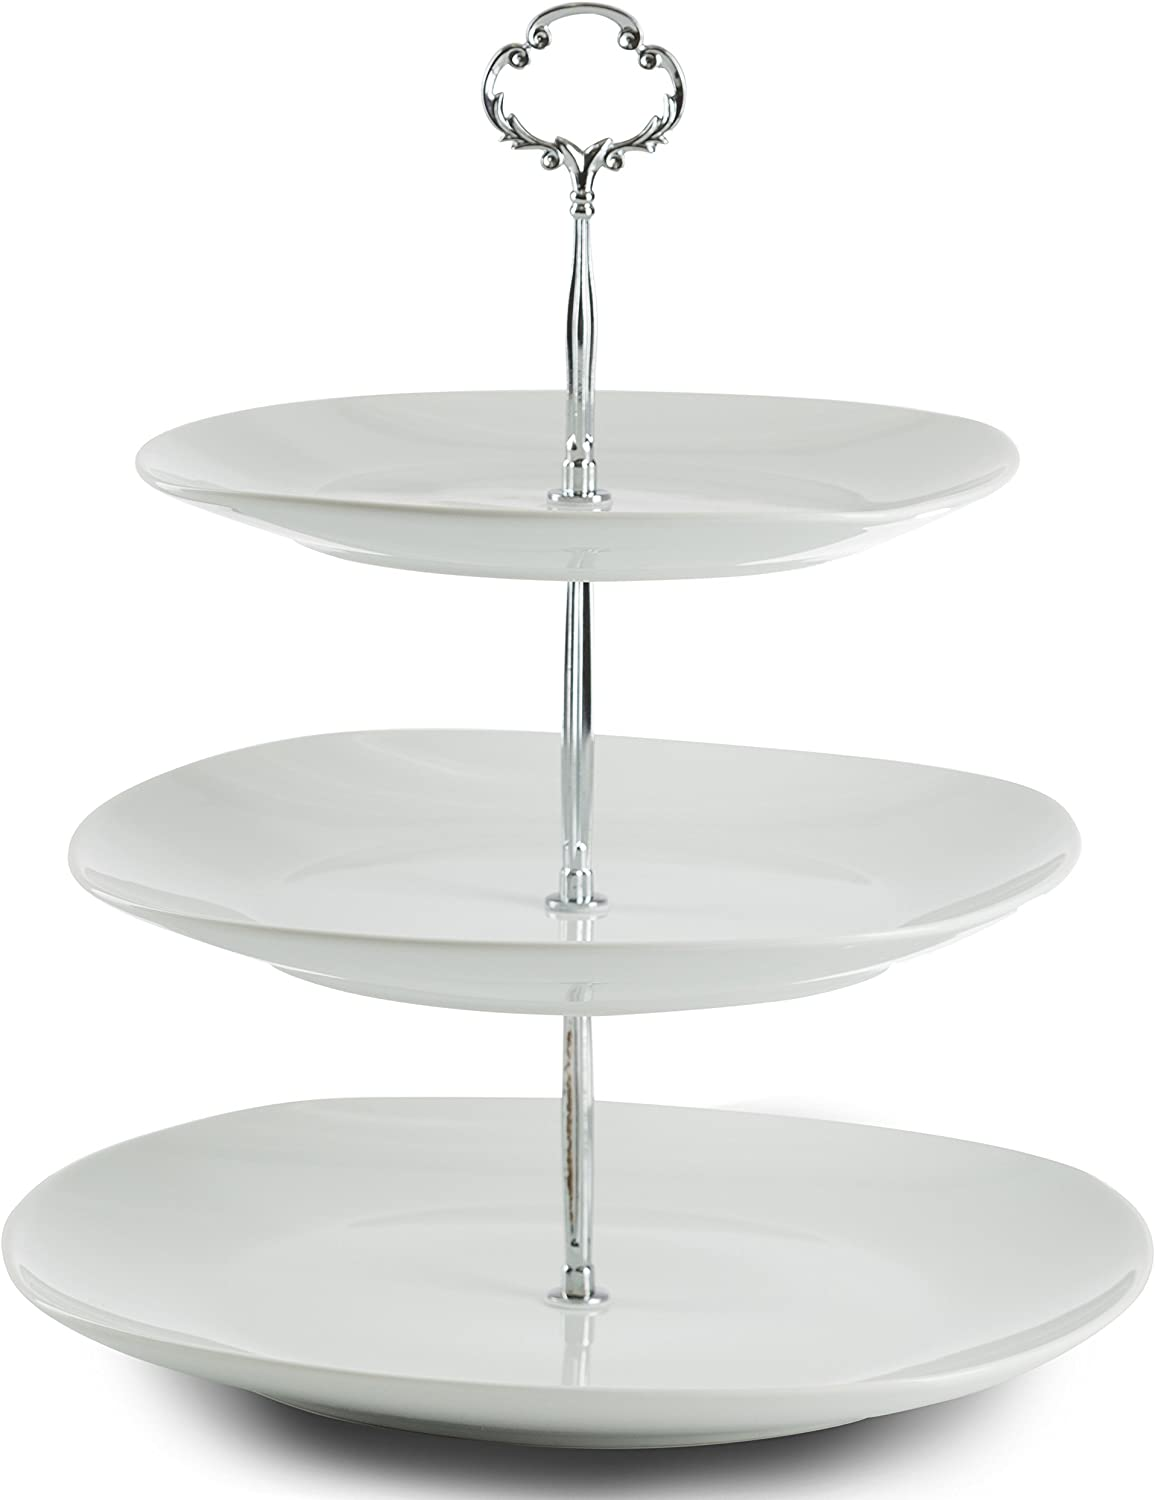 Klikel 3 Tiered Serving Stand - Serving Tray For Parties - Square Platter For Cupcakes Fruits Dessert or Tea - Cake Pop Stand And Buffet Server